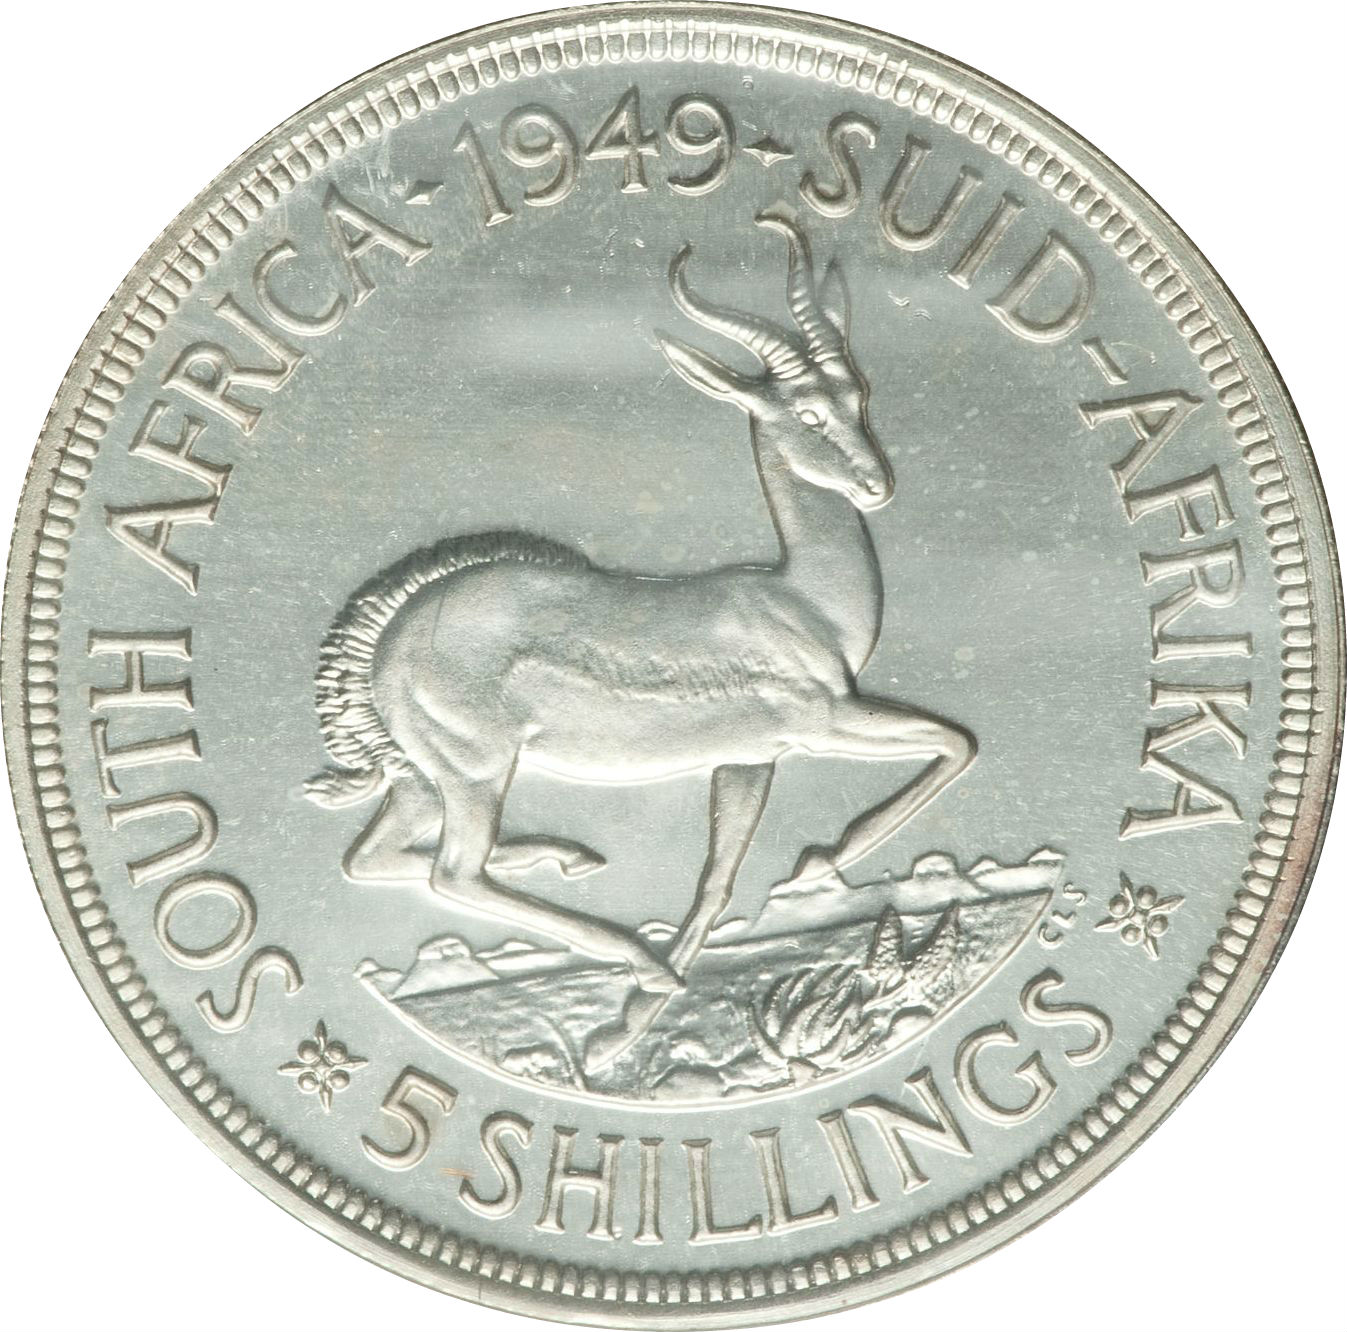 5 Shillings - George VI (5 Shillings, SEXTVS REX) - South Africa